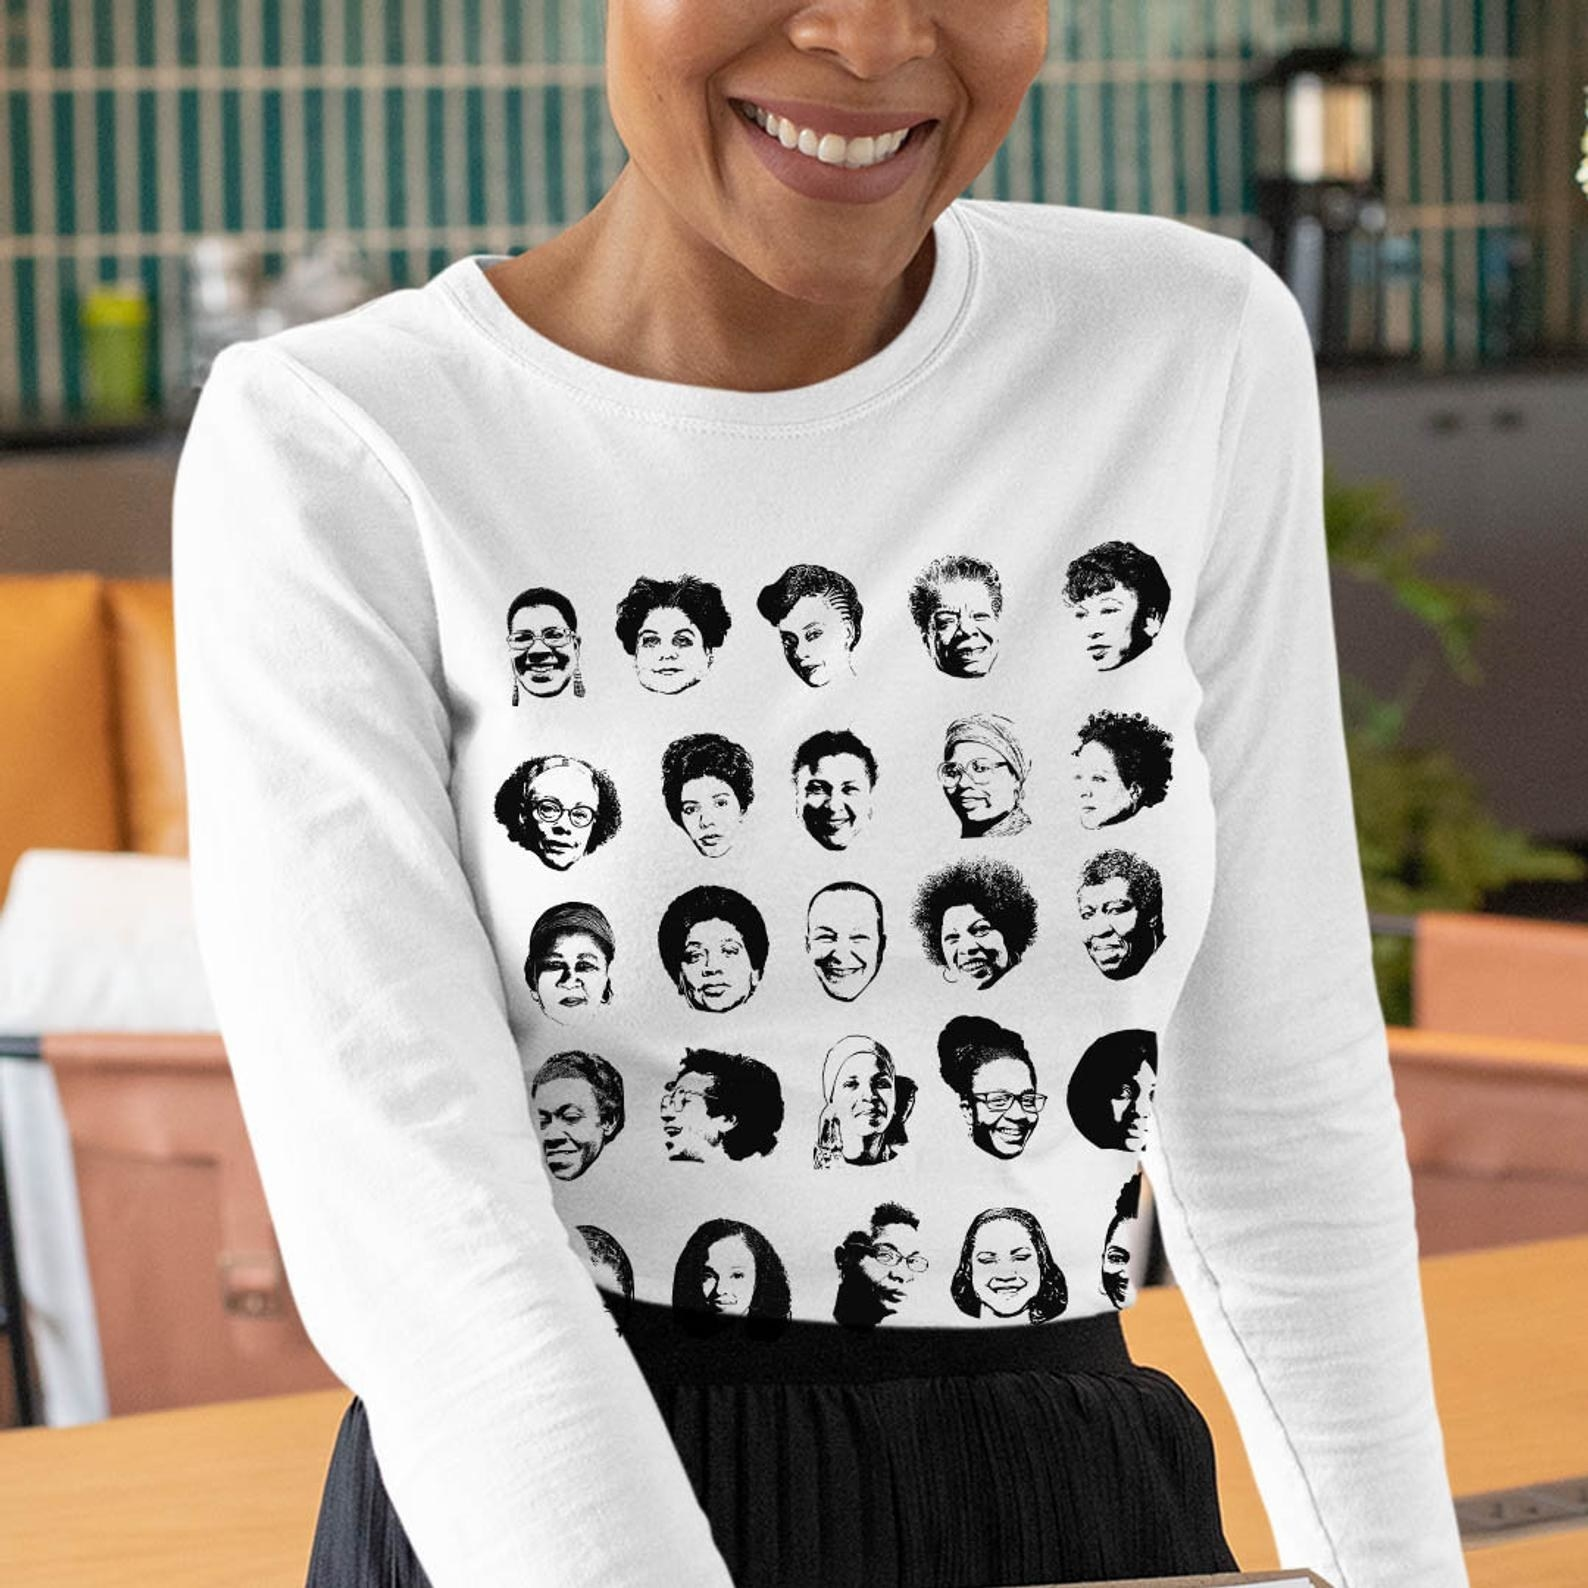 A model in the white long sleeve tee with 25 images of the authors' faces